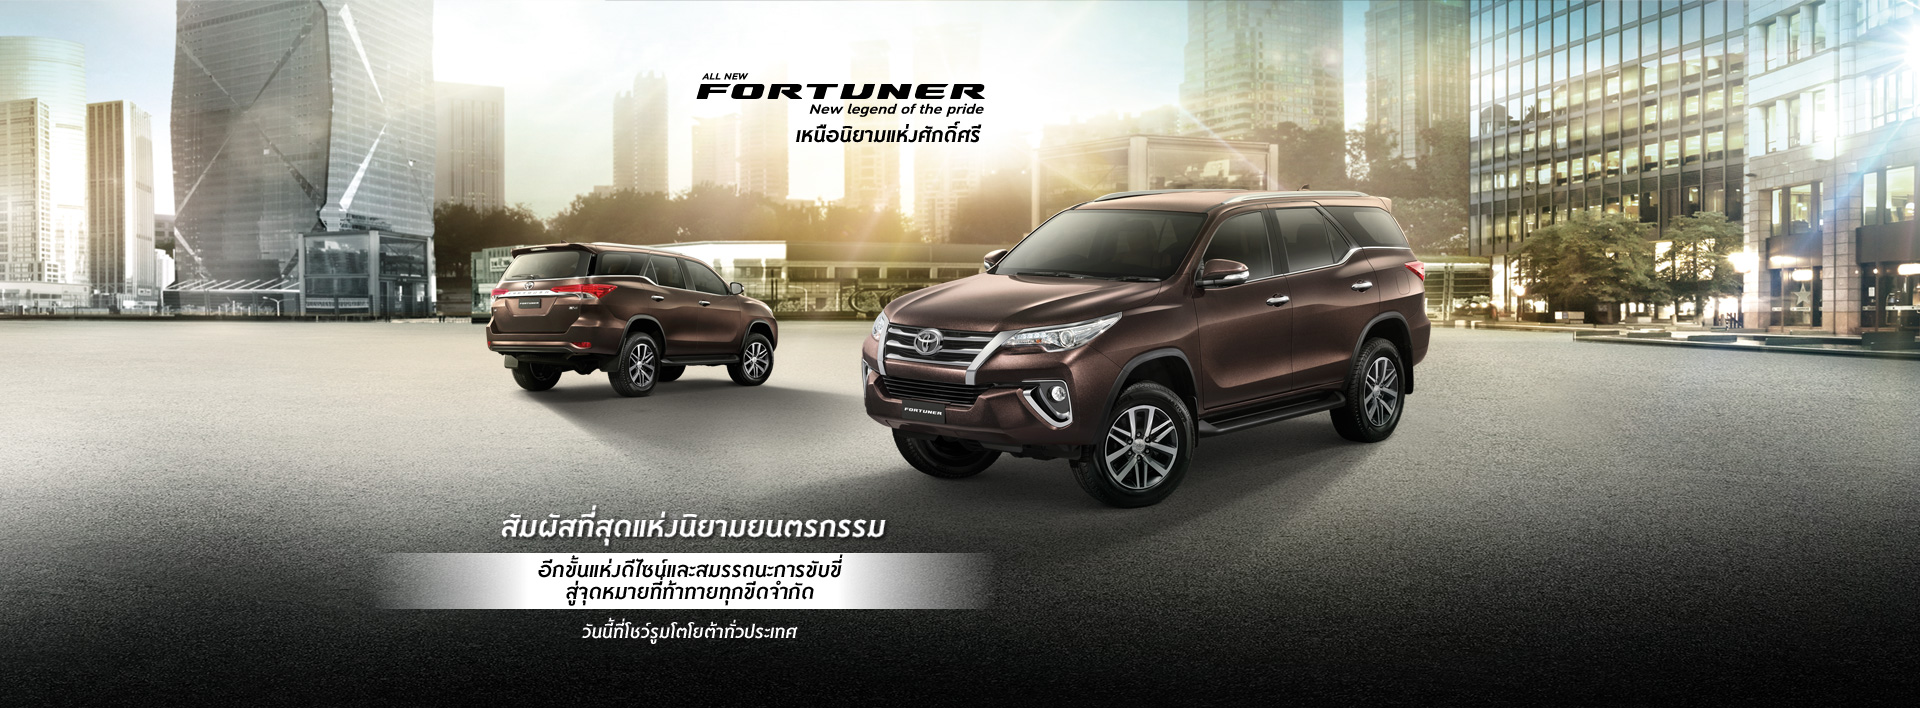 All_new_Fortuner